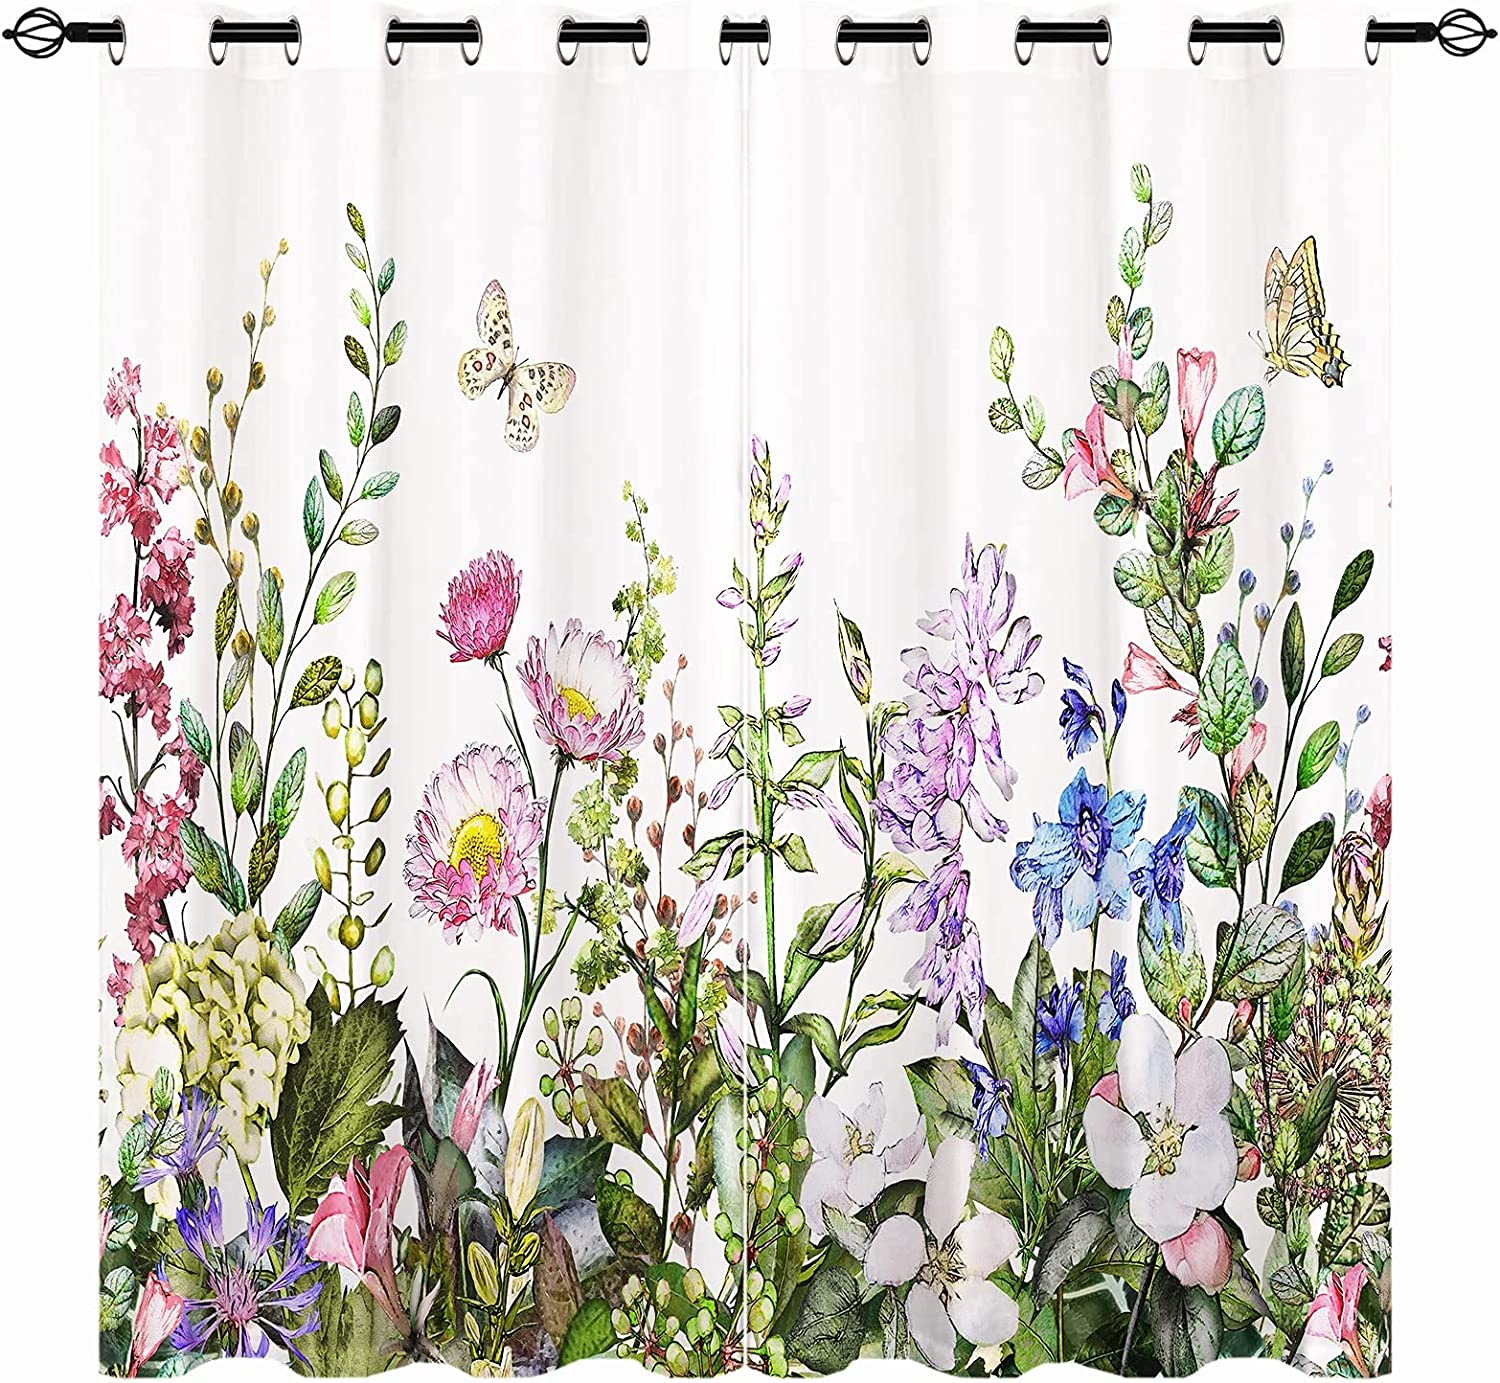 ANHOPE セール商品 全商品オープニング価格 Watercolor Floral Blackout Curtains Wi Herbs Summer and -